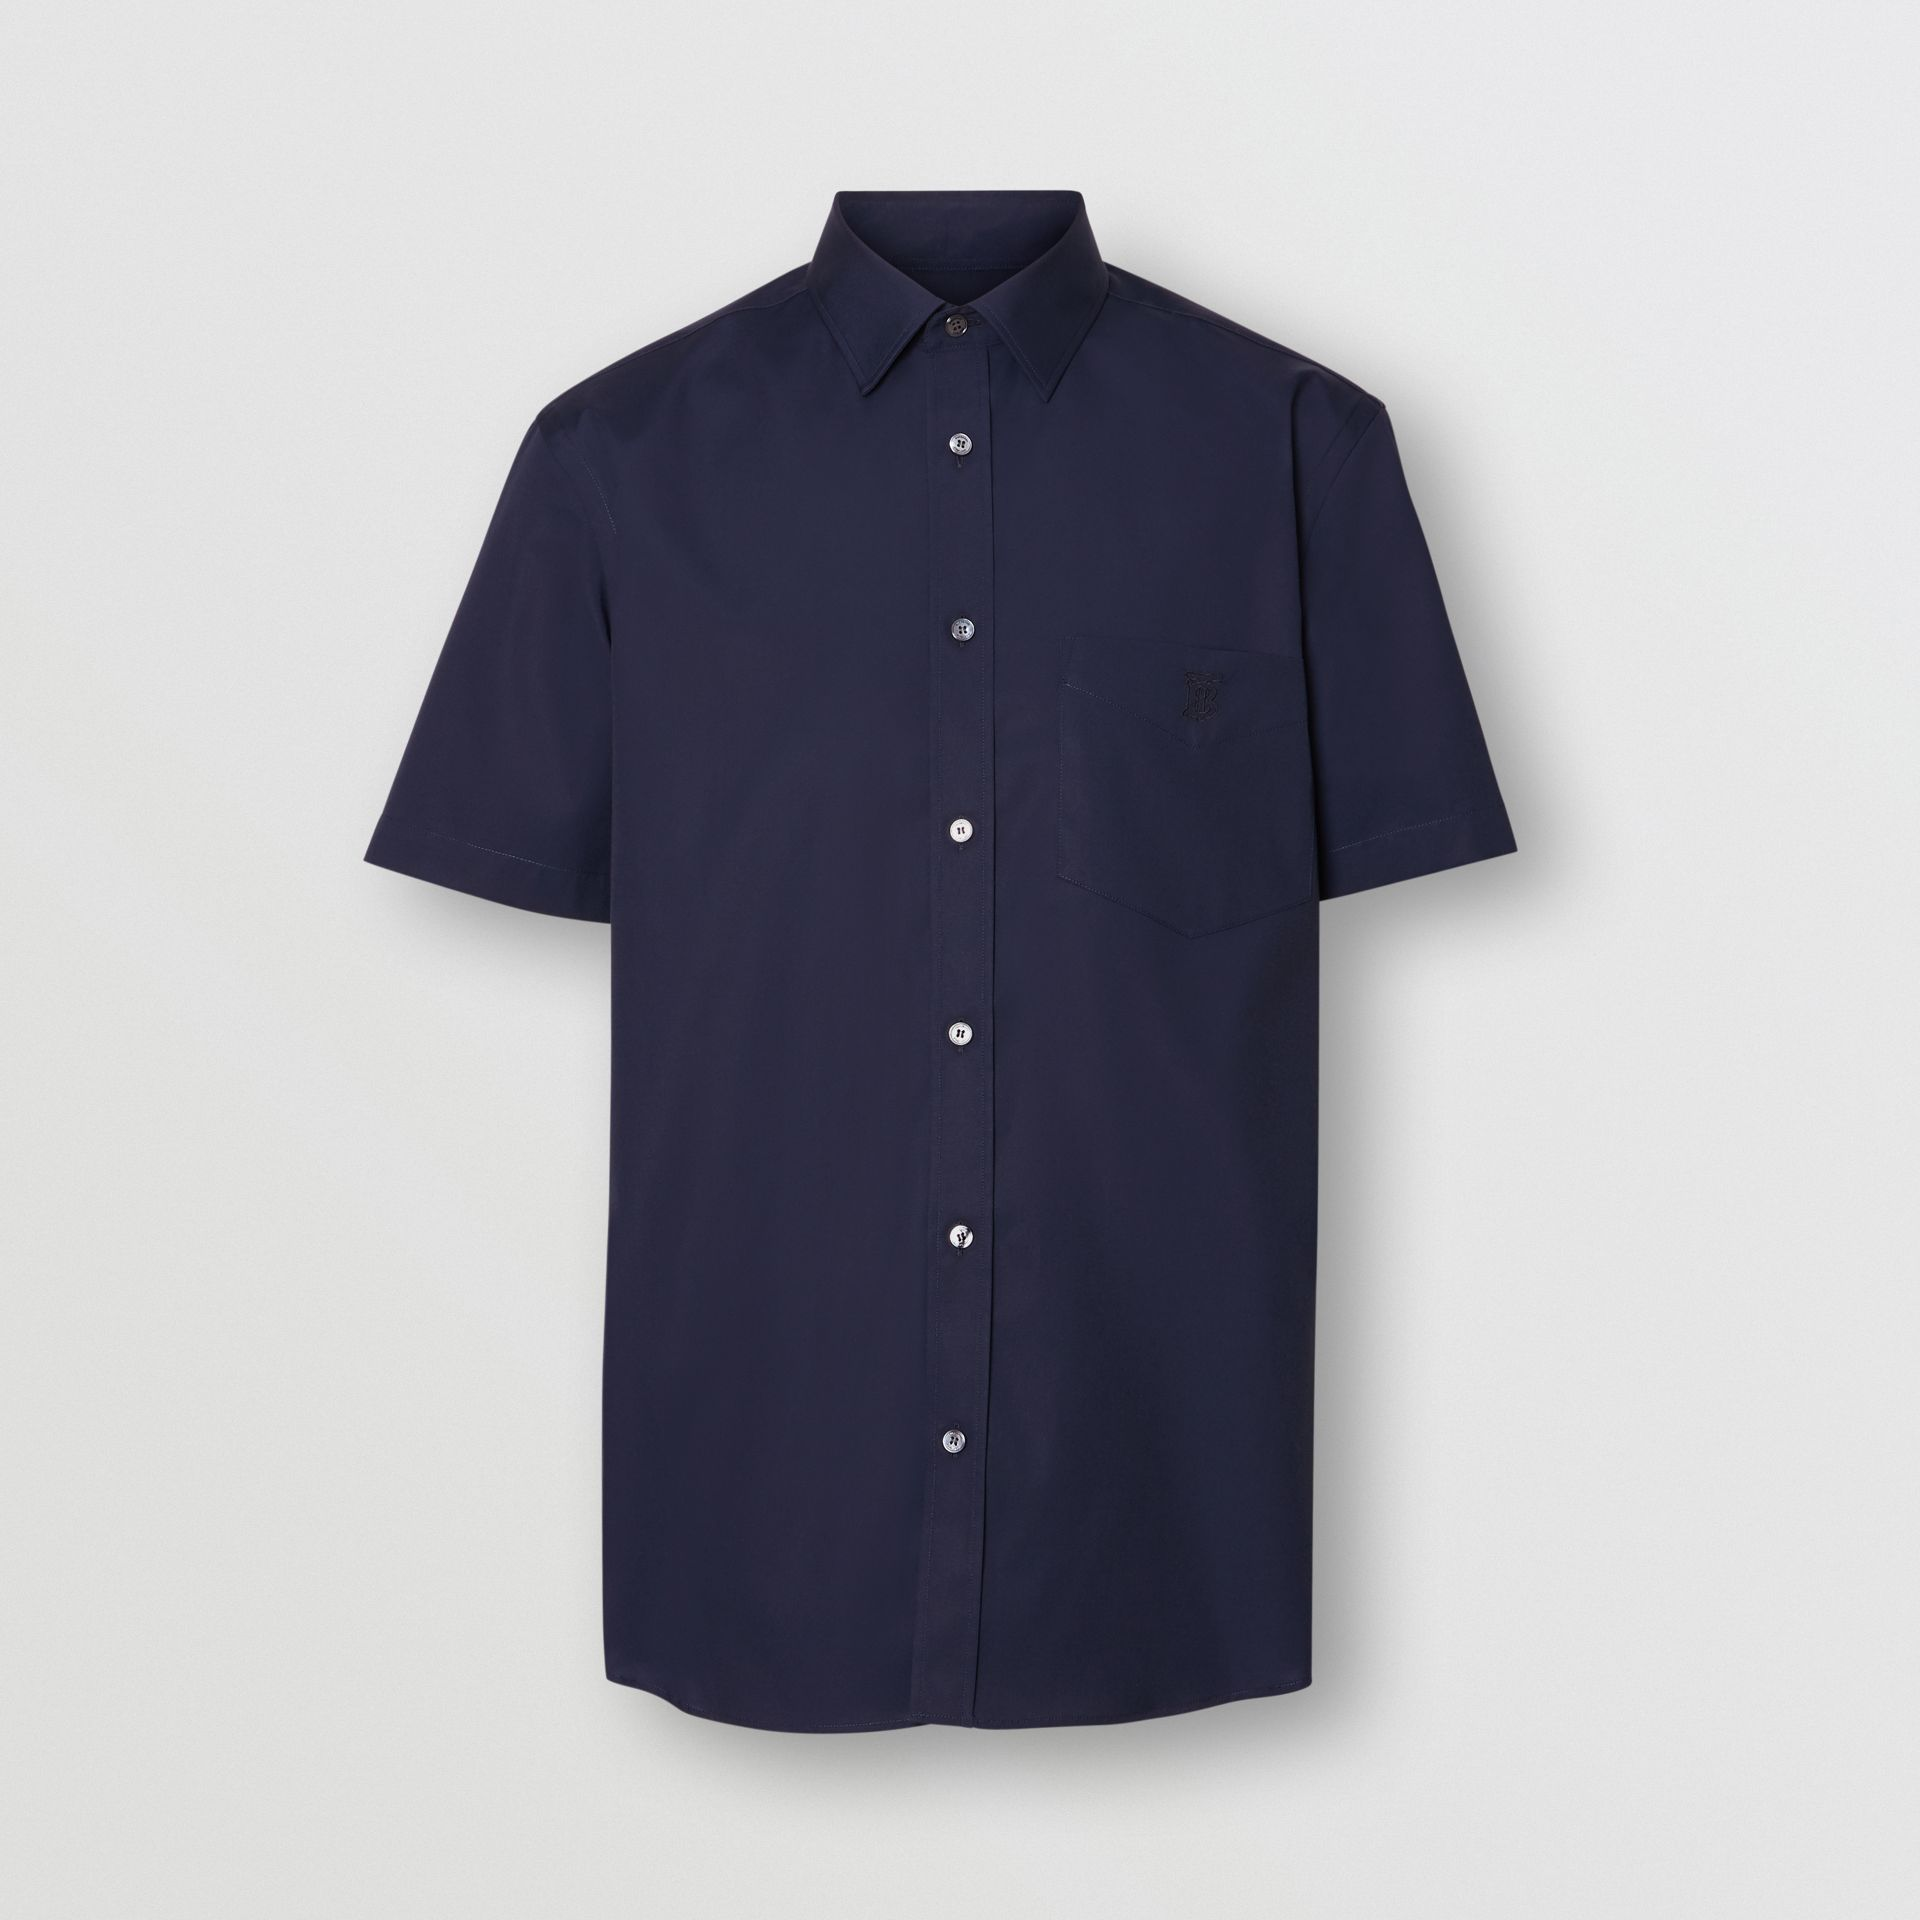 Short-sleeve Monogram Motif Stretch Cotton Shirt in Navy - Men | Burberry Hong Kong - gallery image 3